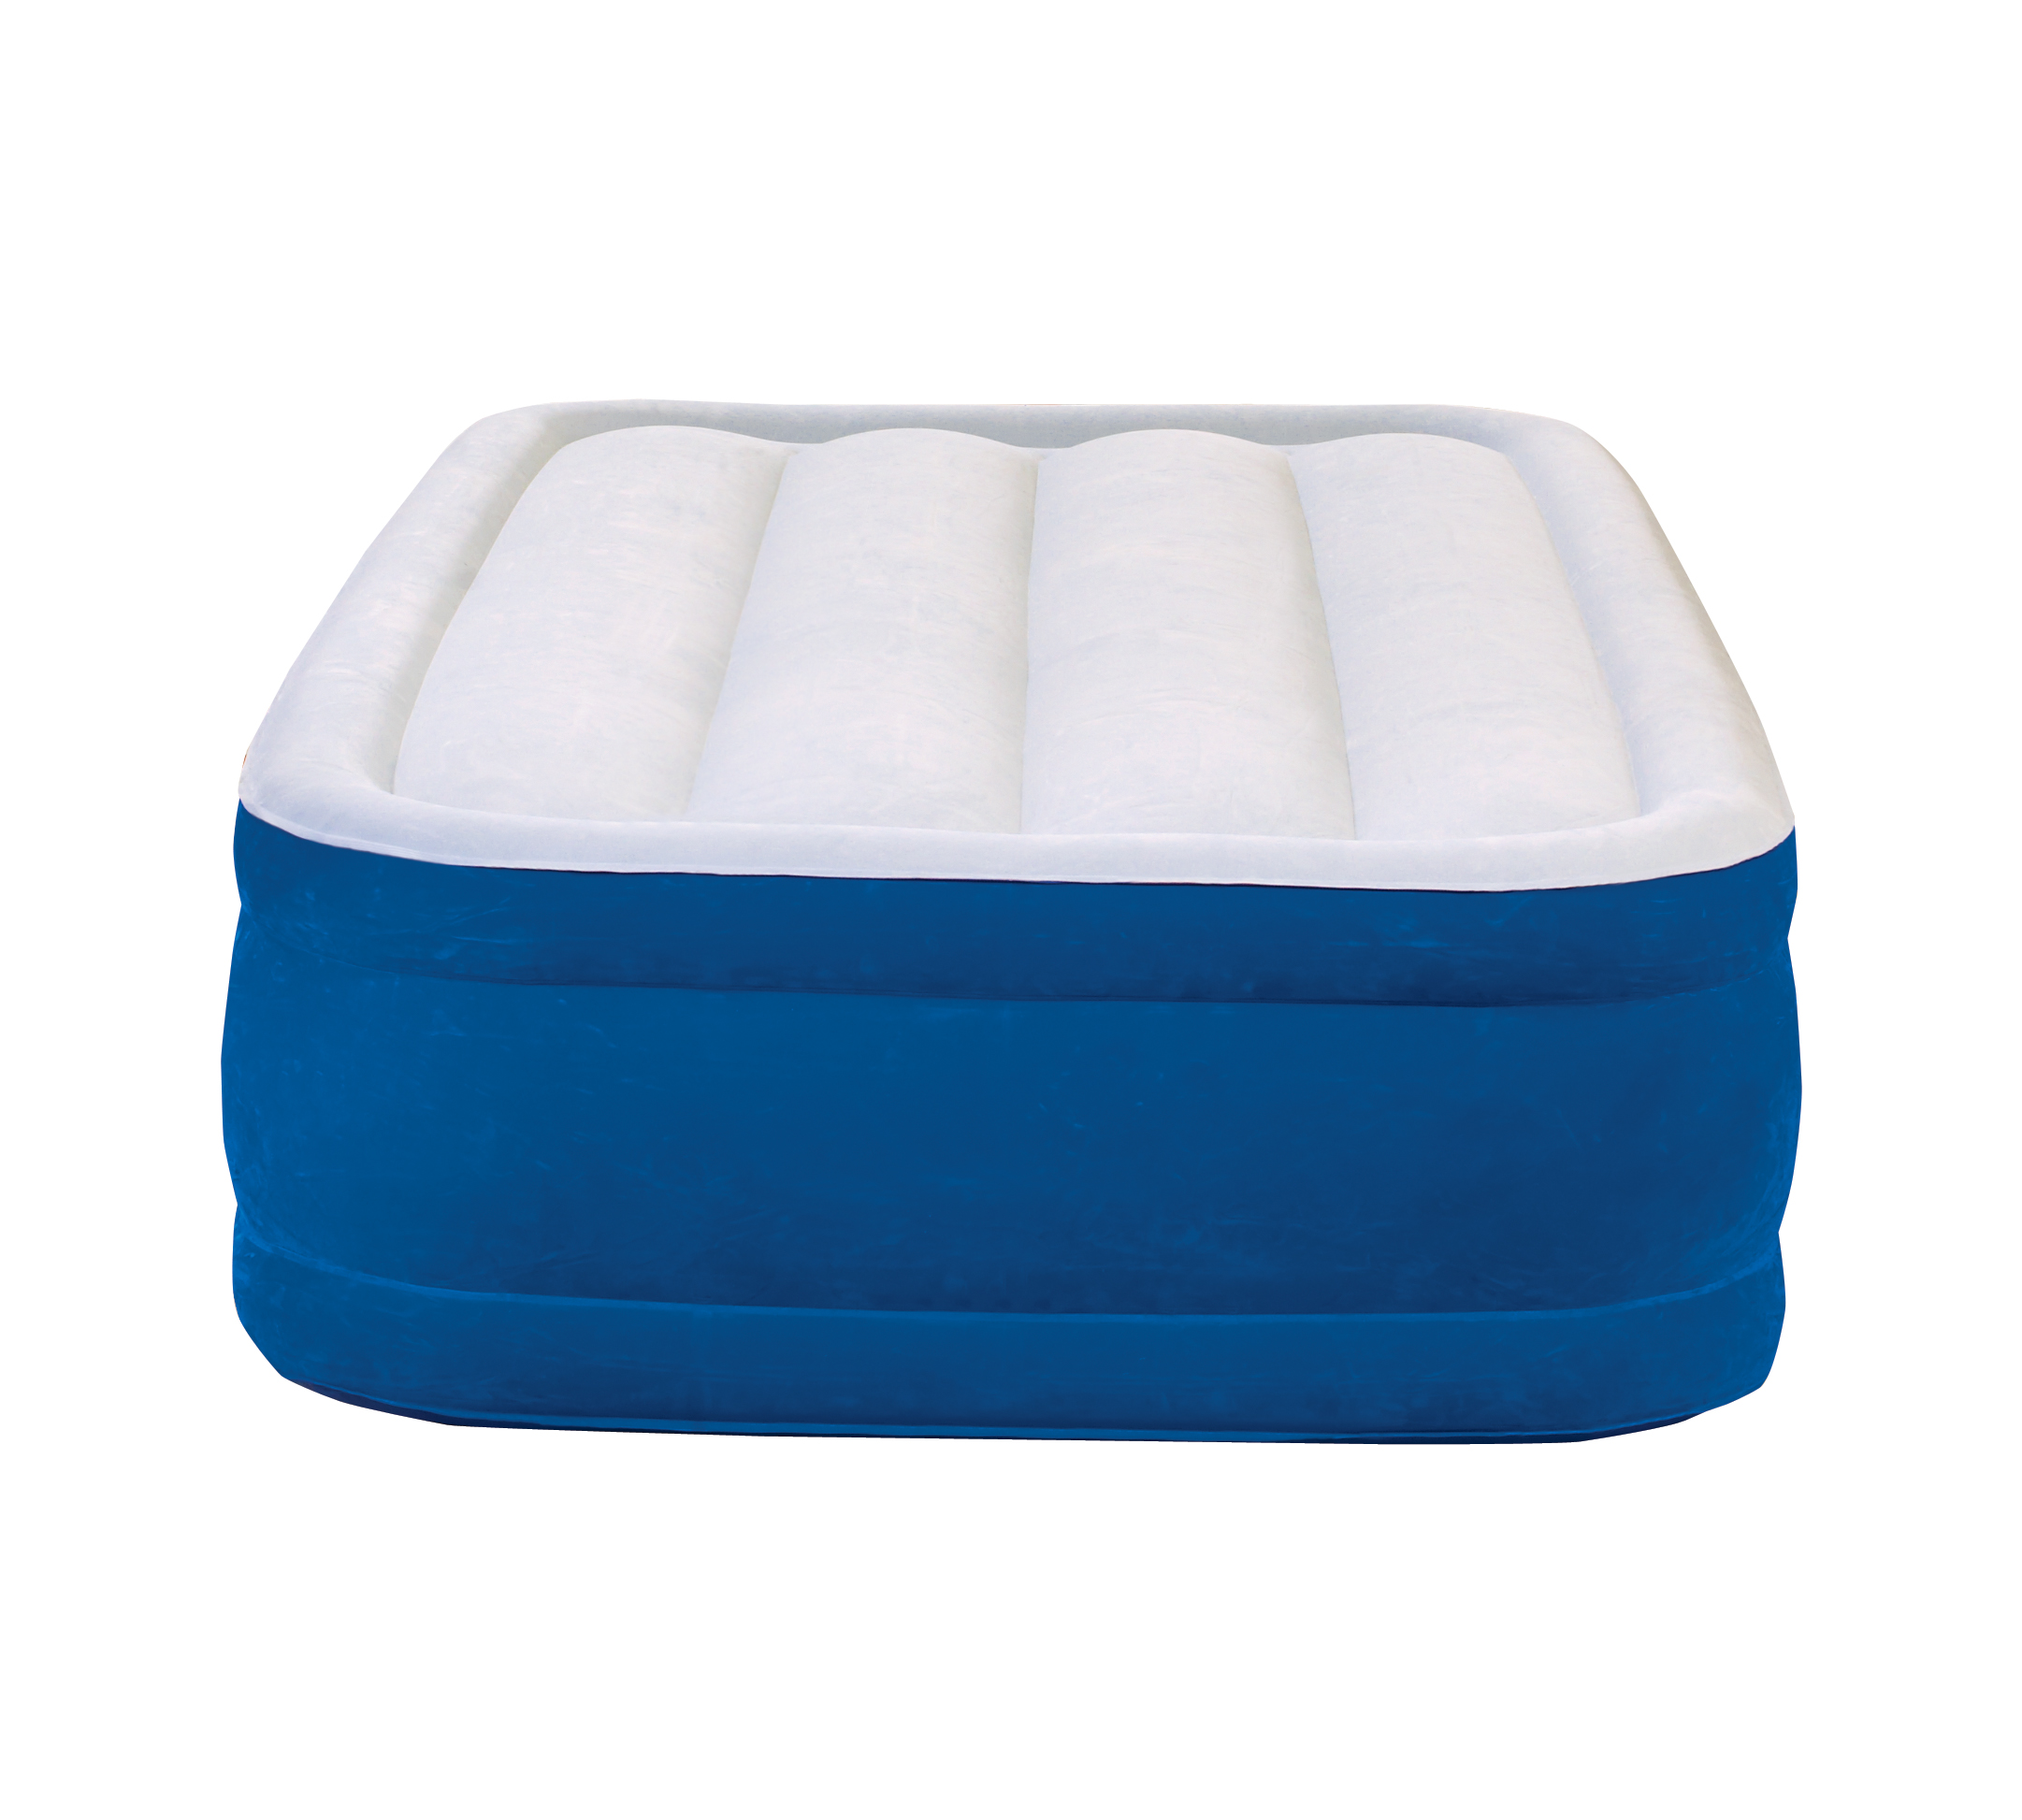 "Simmons Beautyrest Plush Aire 15"" Raised Air Bed - Twin Size"